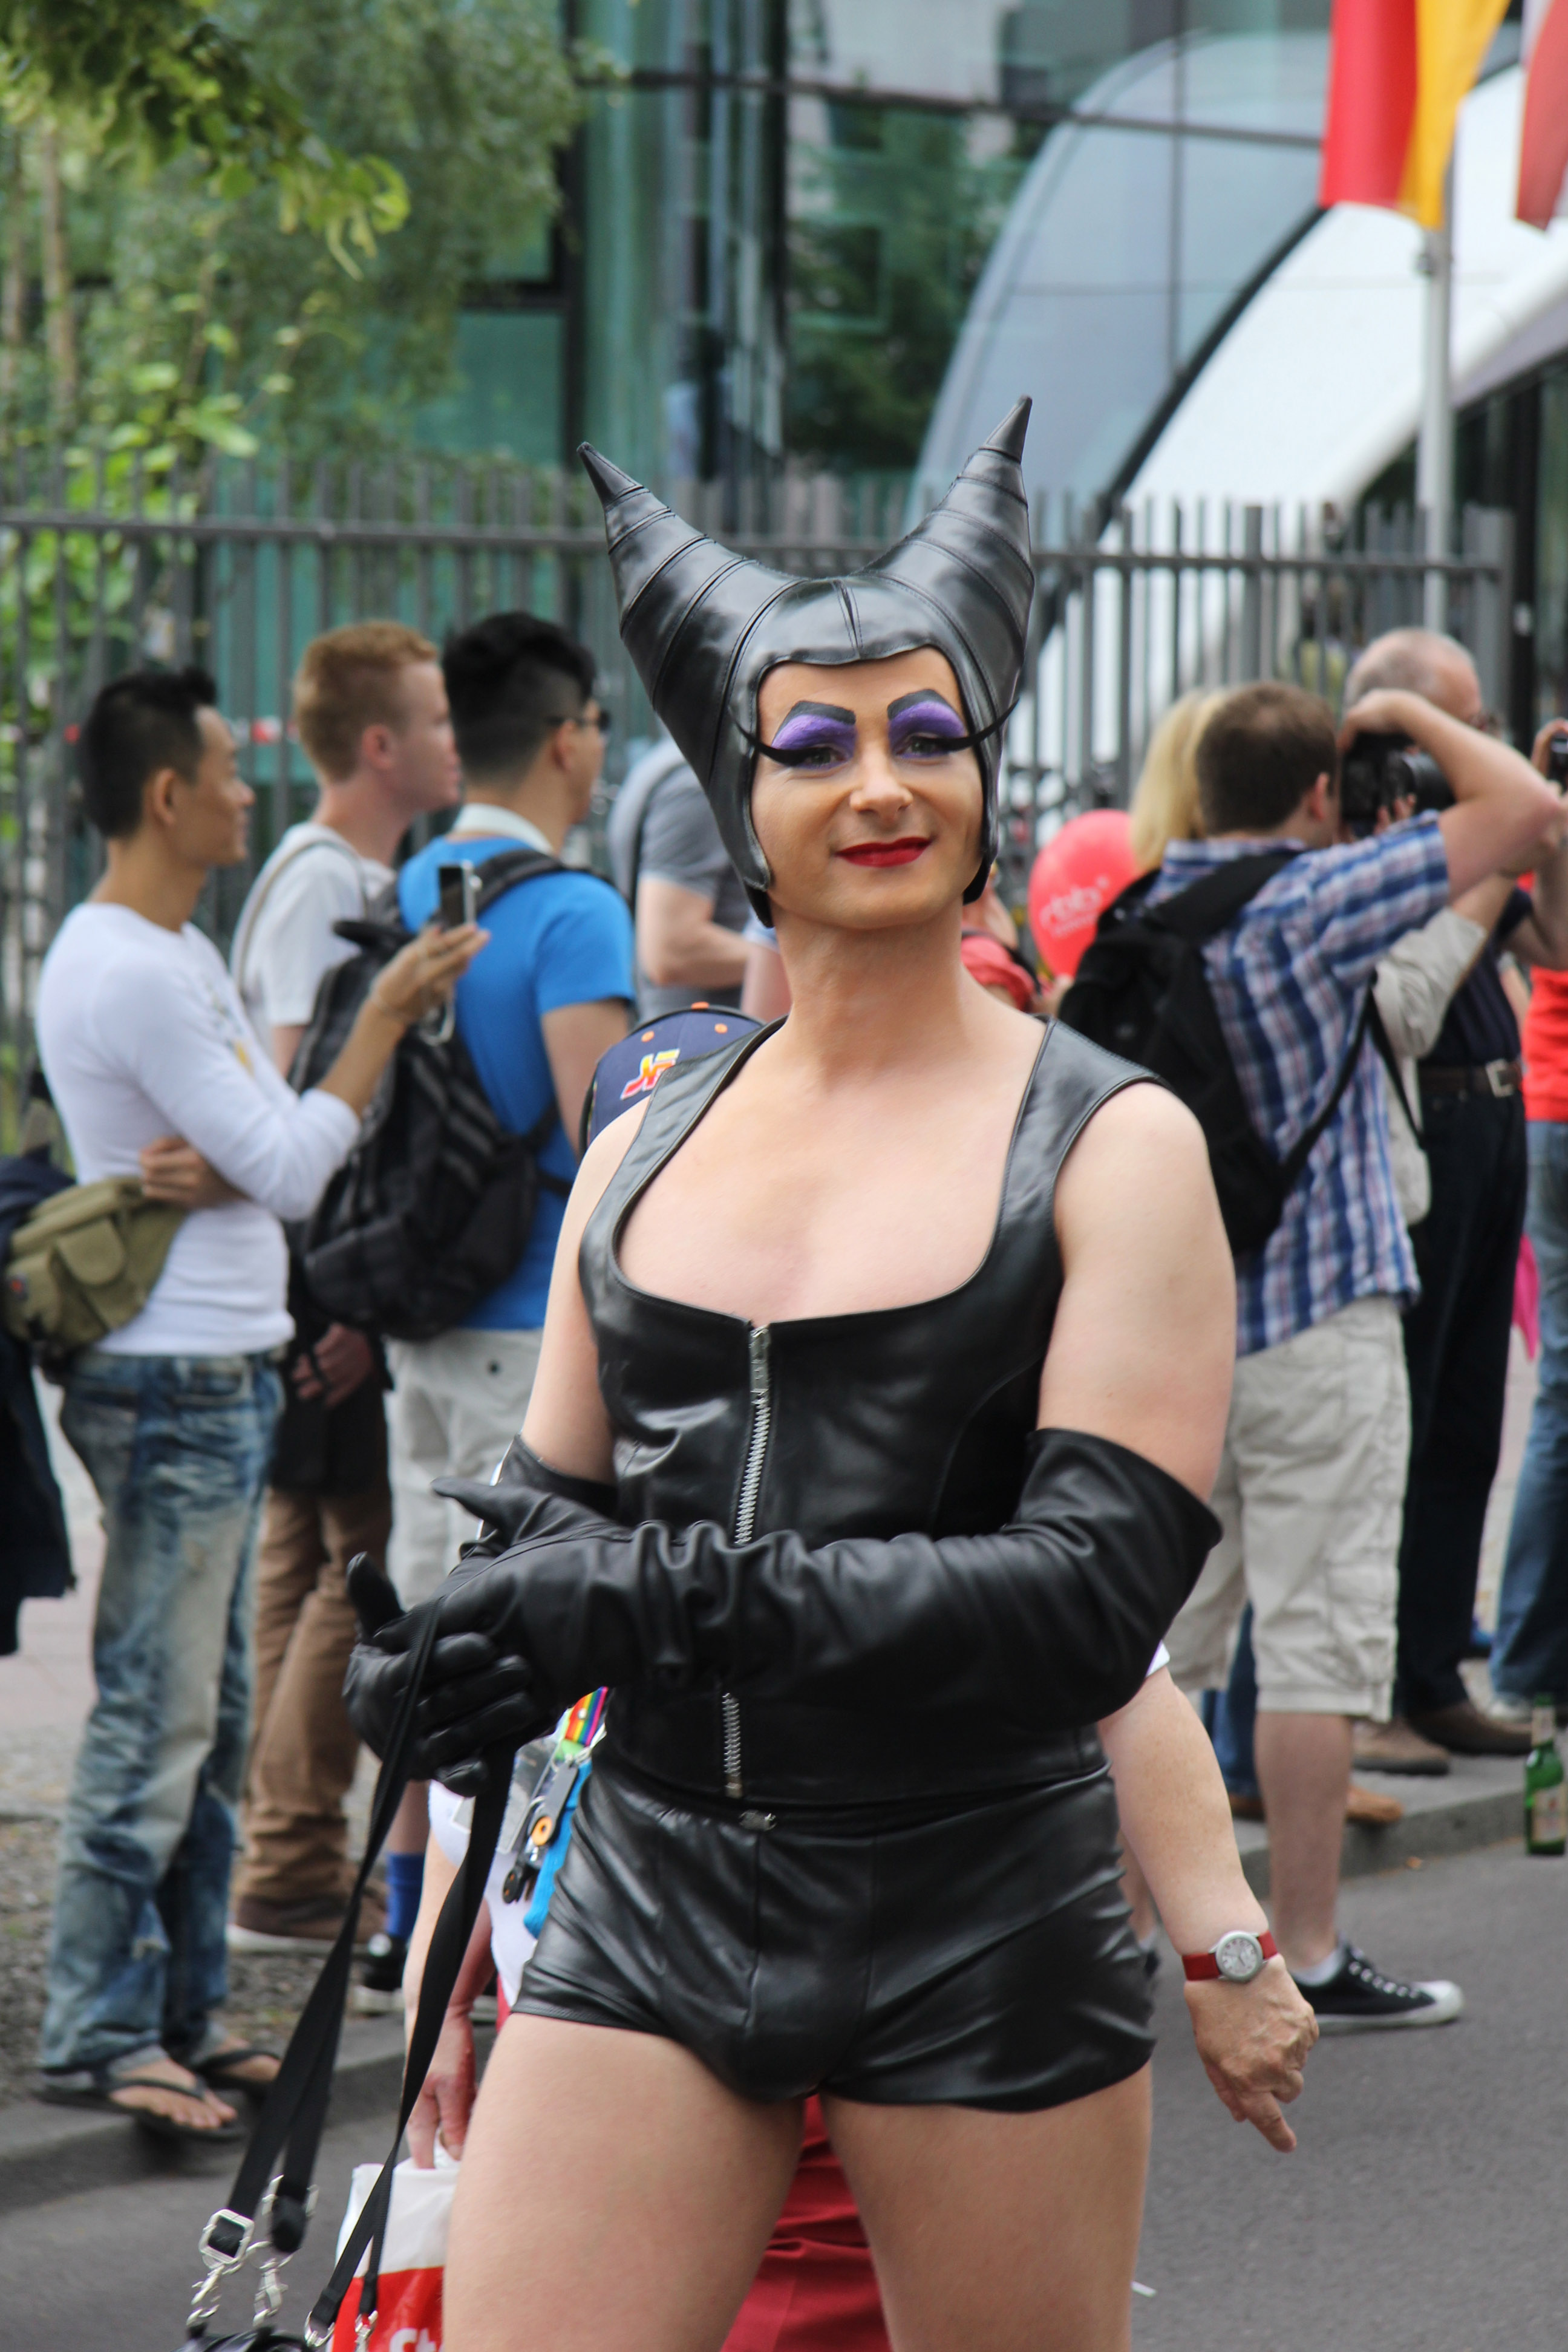 Horny: A reveller at the Christopher Street Day (CSD) Parade in Berlin